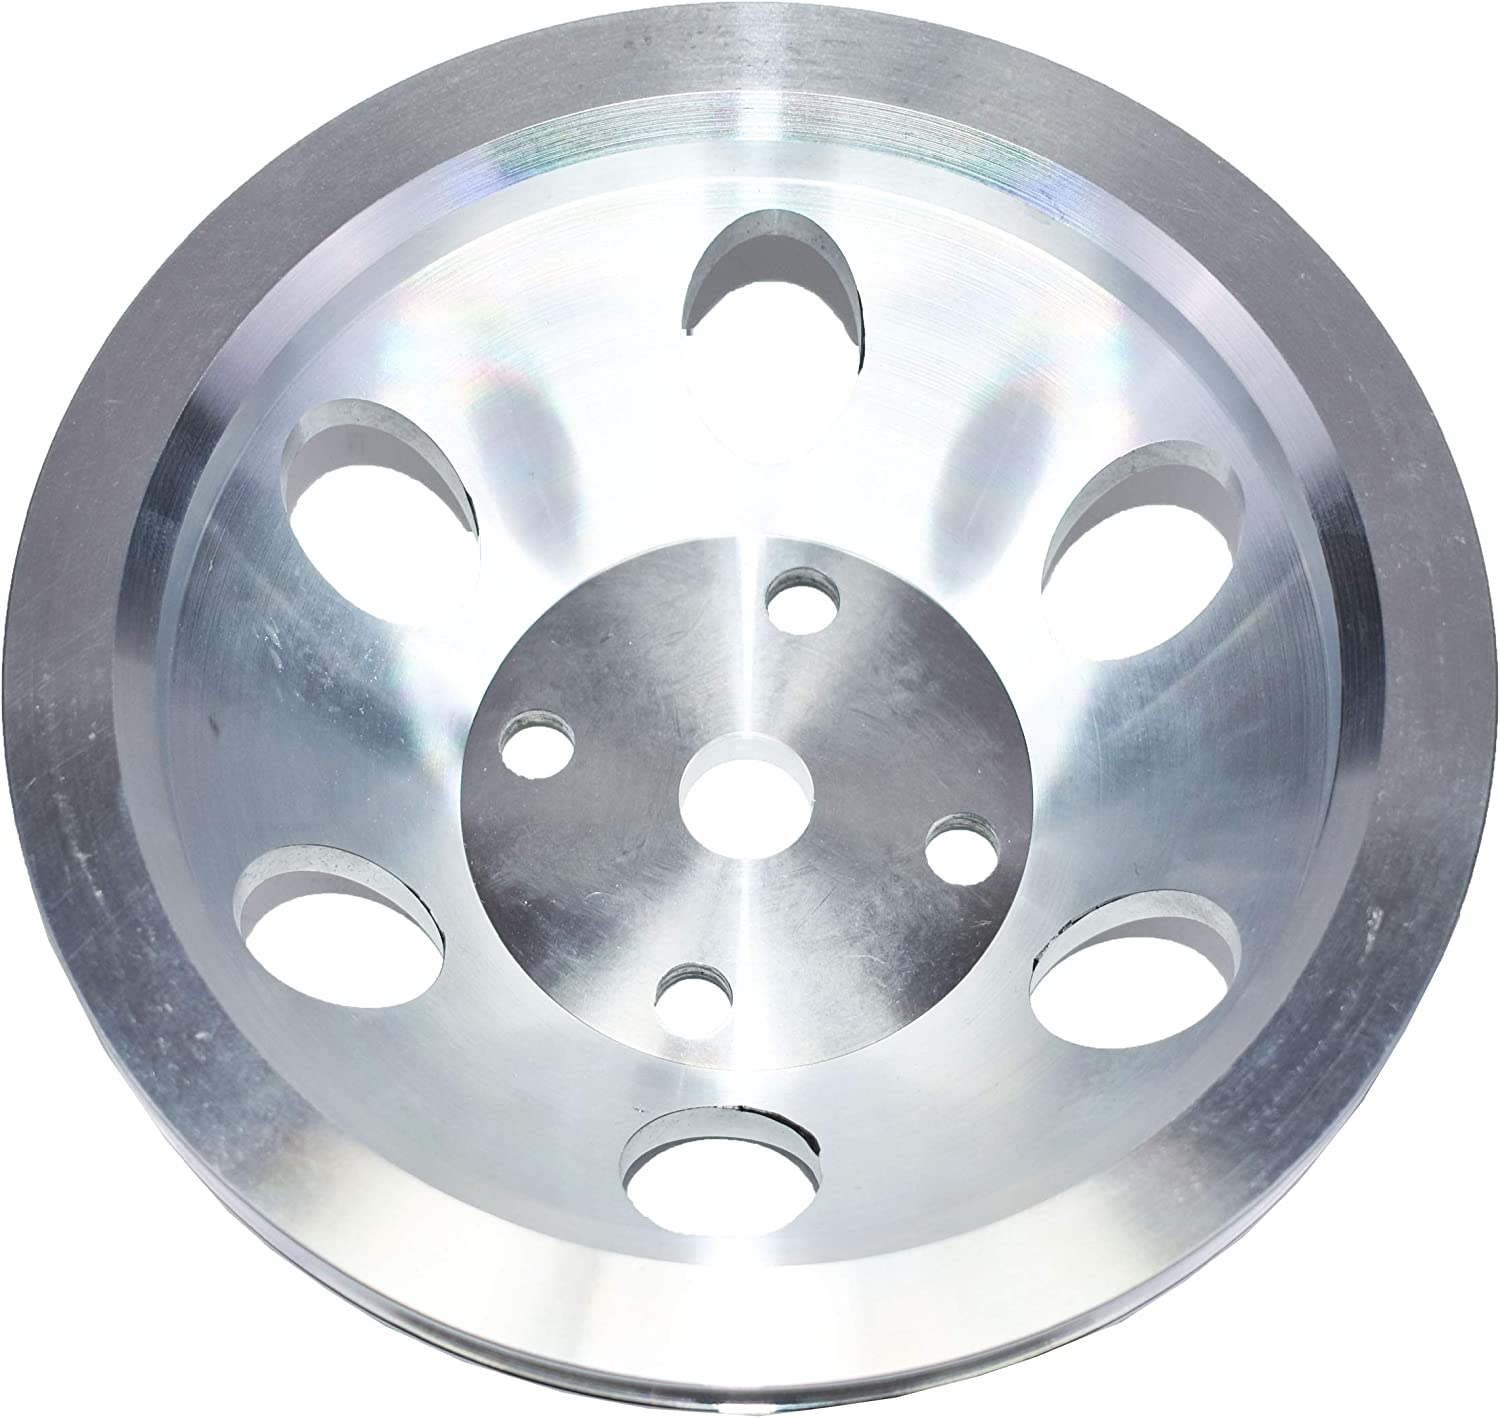 A-Team Performance Single-Groove Aluminum Long Water Pump Pulley Compatible With Small Block Chevrolet 262 302 400